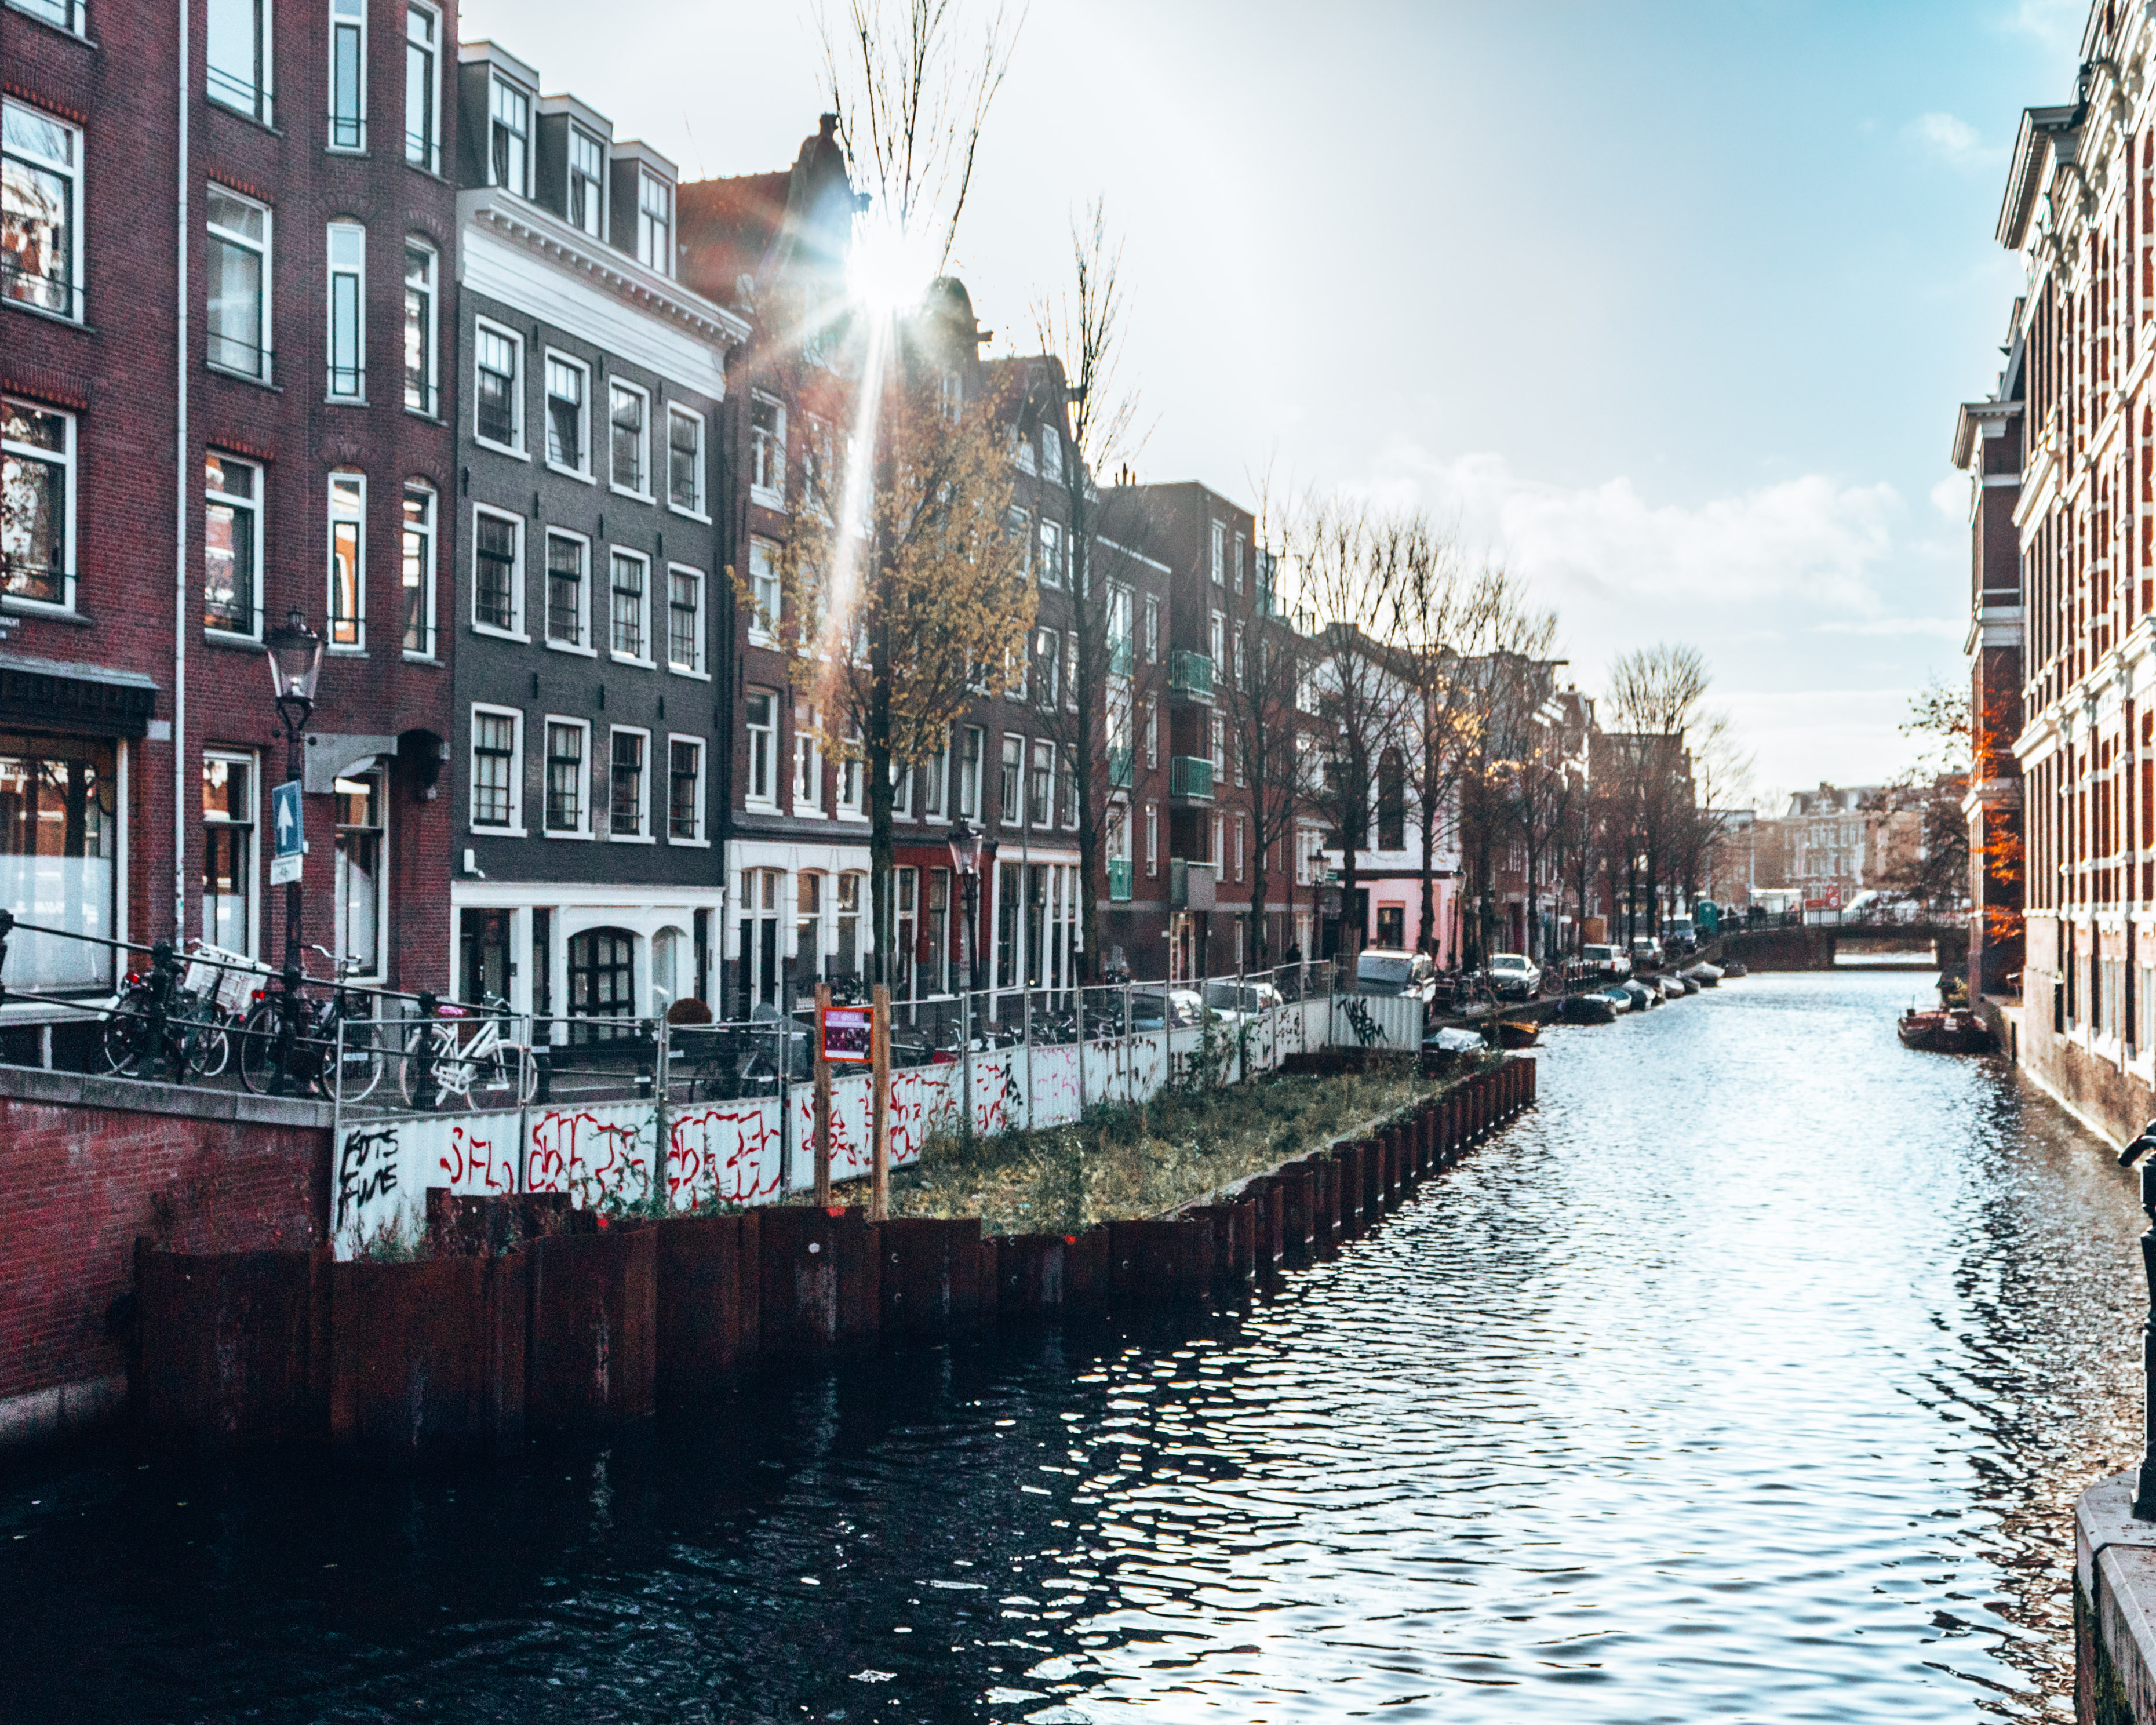 The sun peaking over the buildings by the canals in Amsterdam, Netherlands